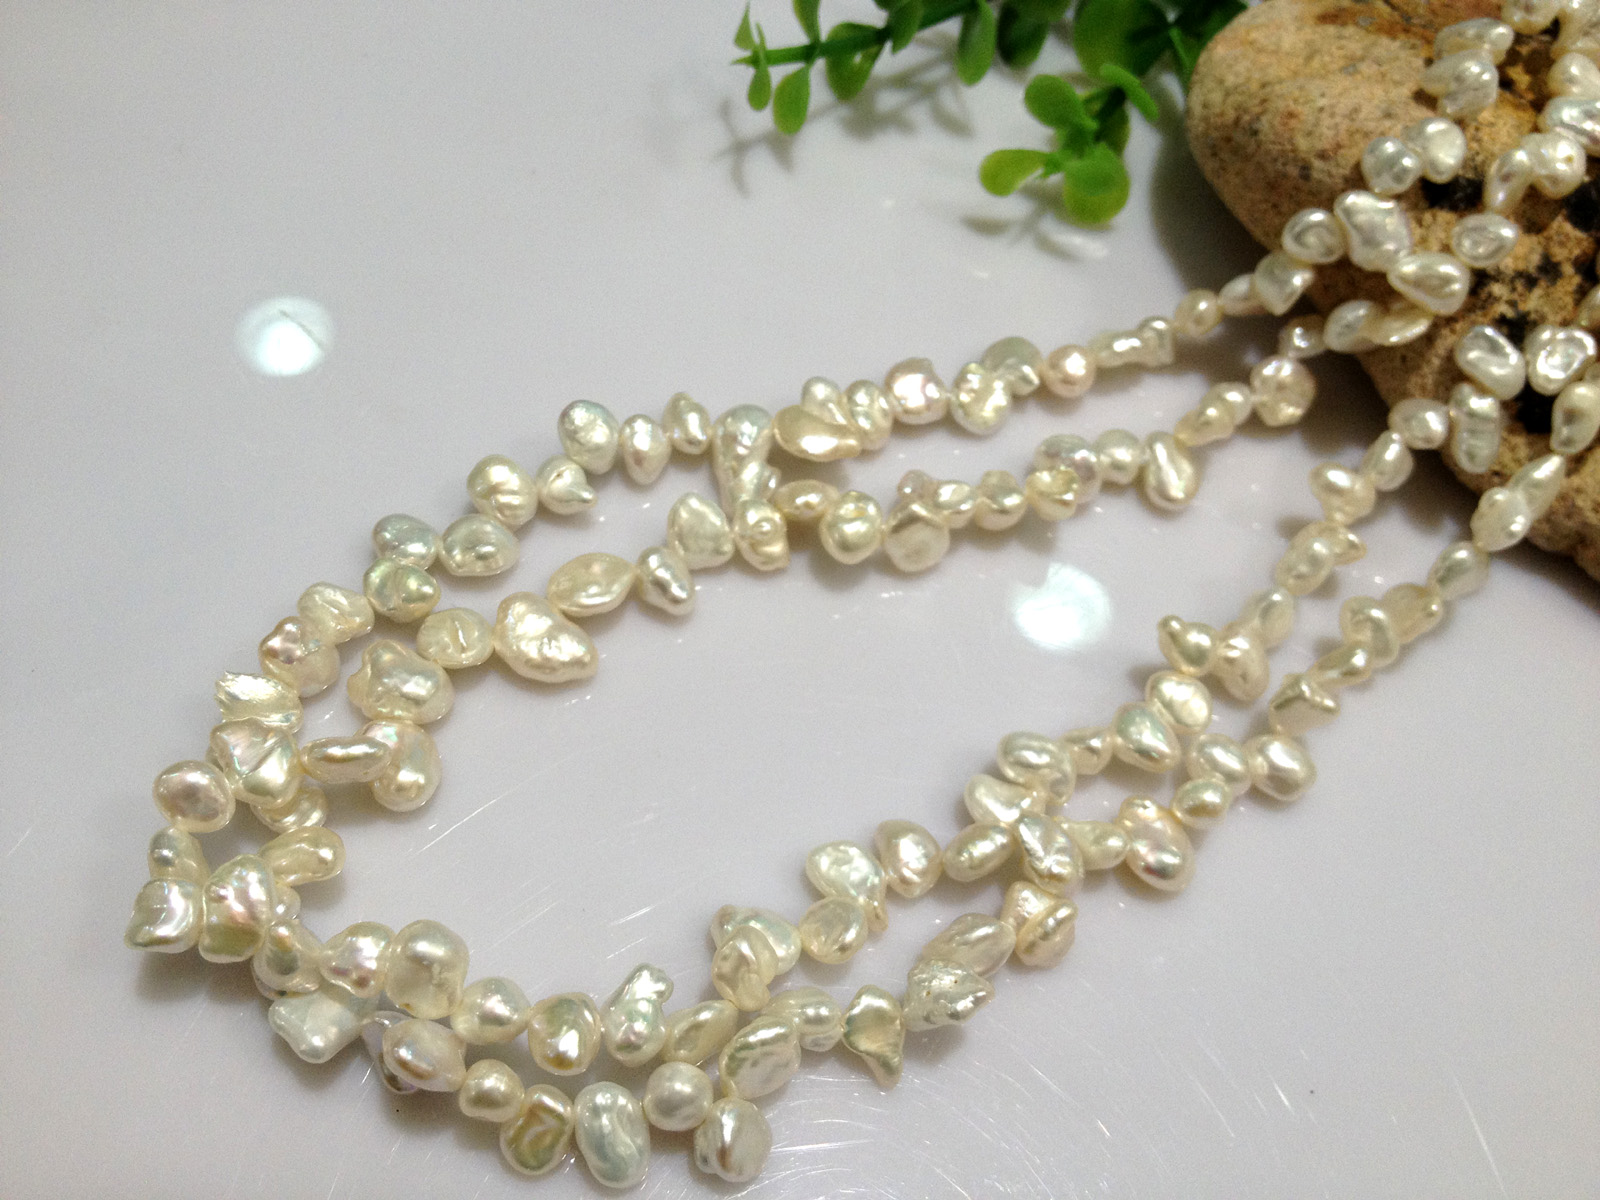 Natural pearl necklace irregular pearl necklace multi-layer 2-ring freshwater pearl necklace winding Necklace